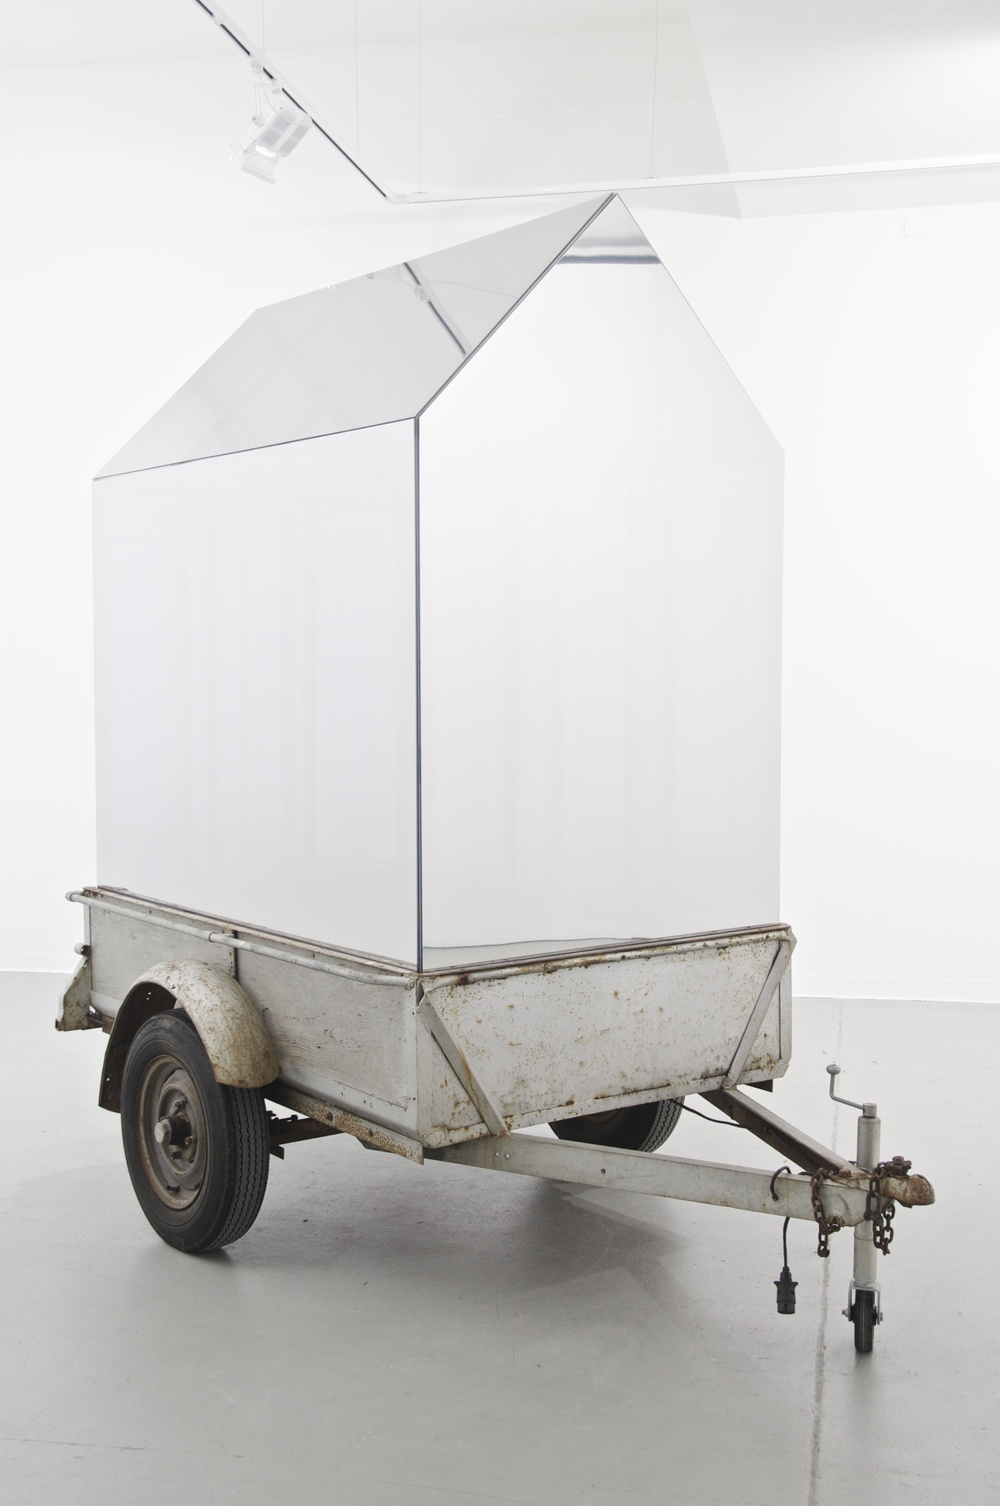 Matt Huppatz,  Go West!  2013-15. Found home-made trailer, acrylic, reflective film, aluminium. Photo by Alex Lofting. Courtesy of the artist.